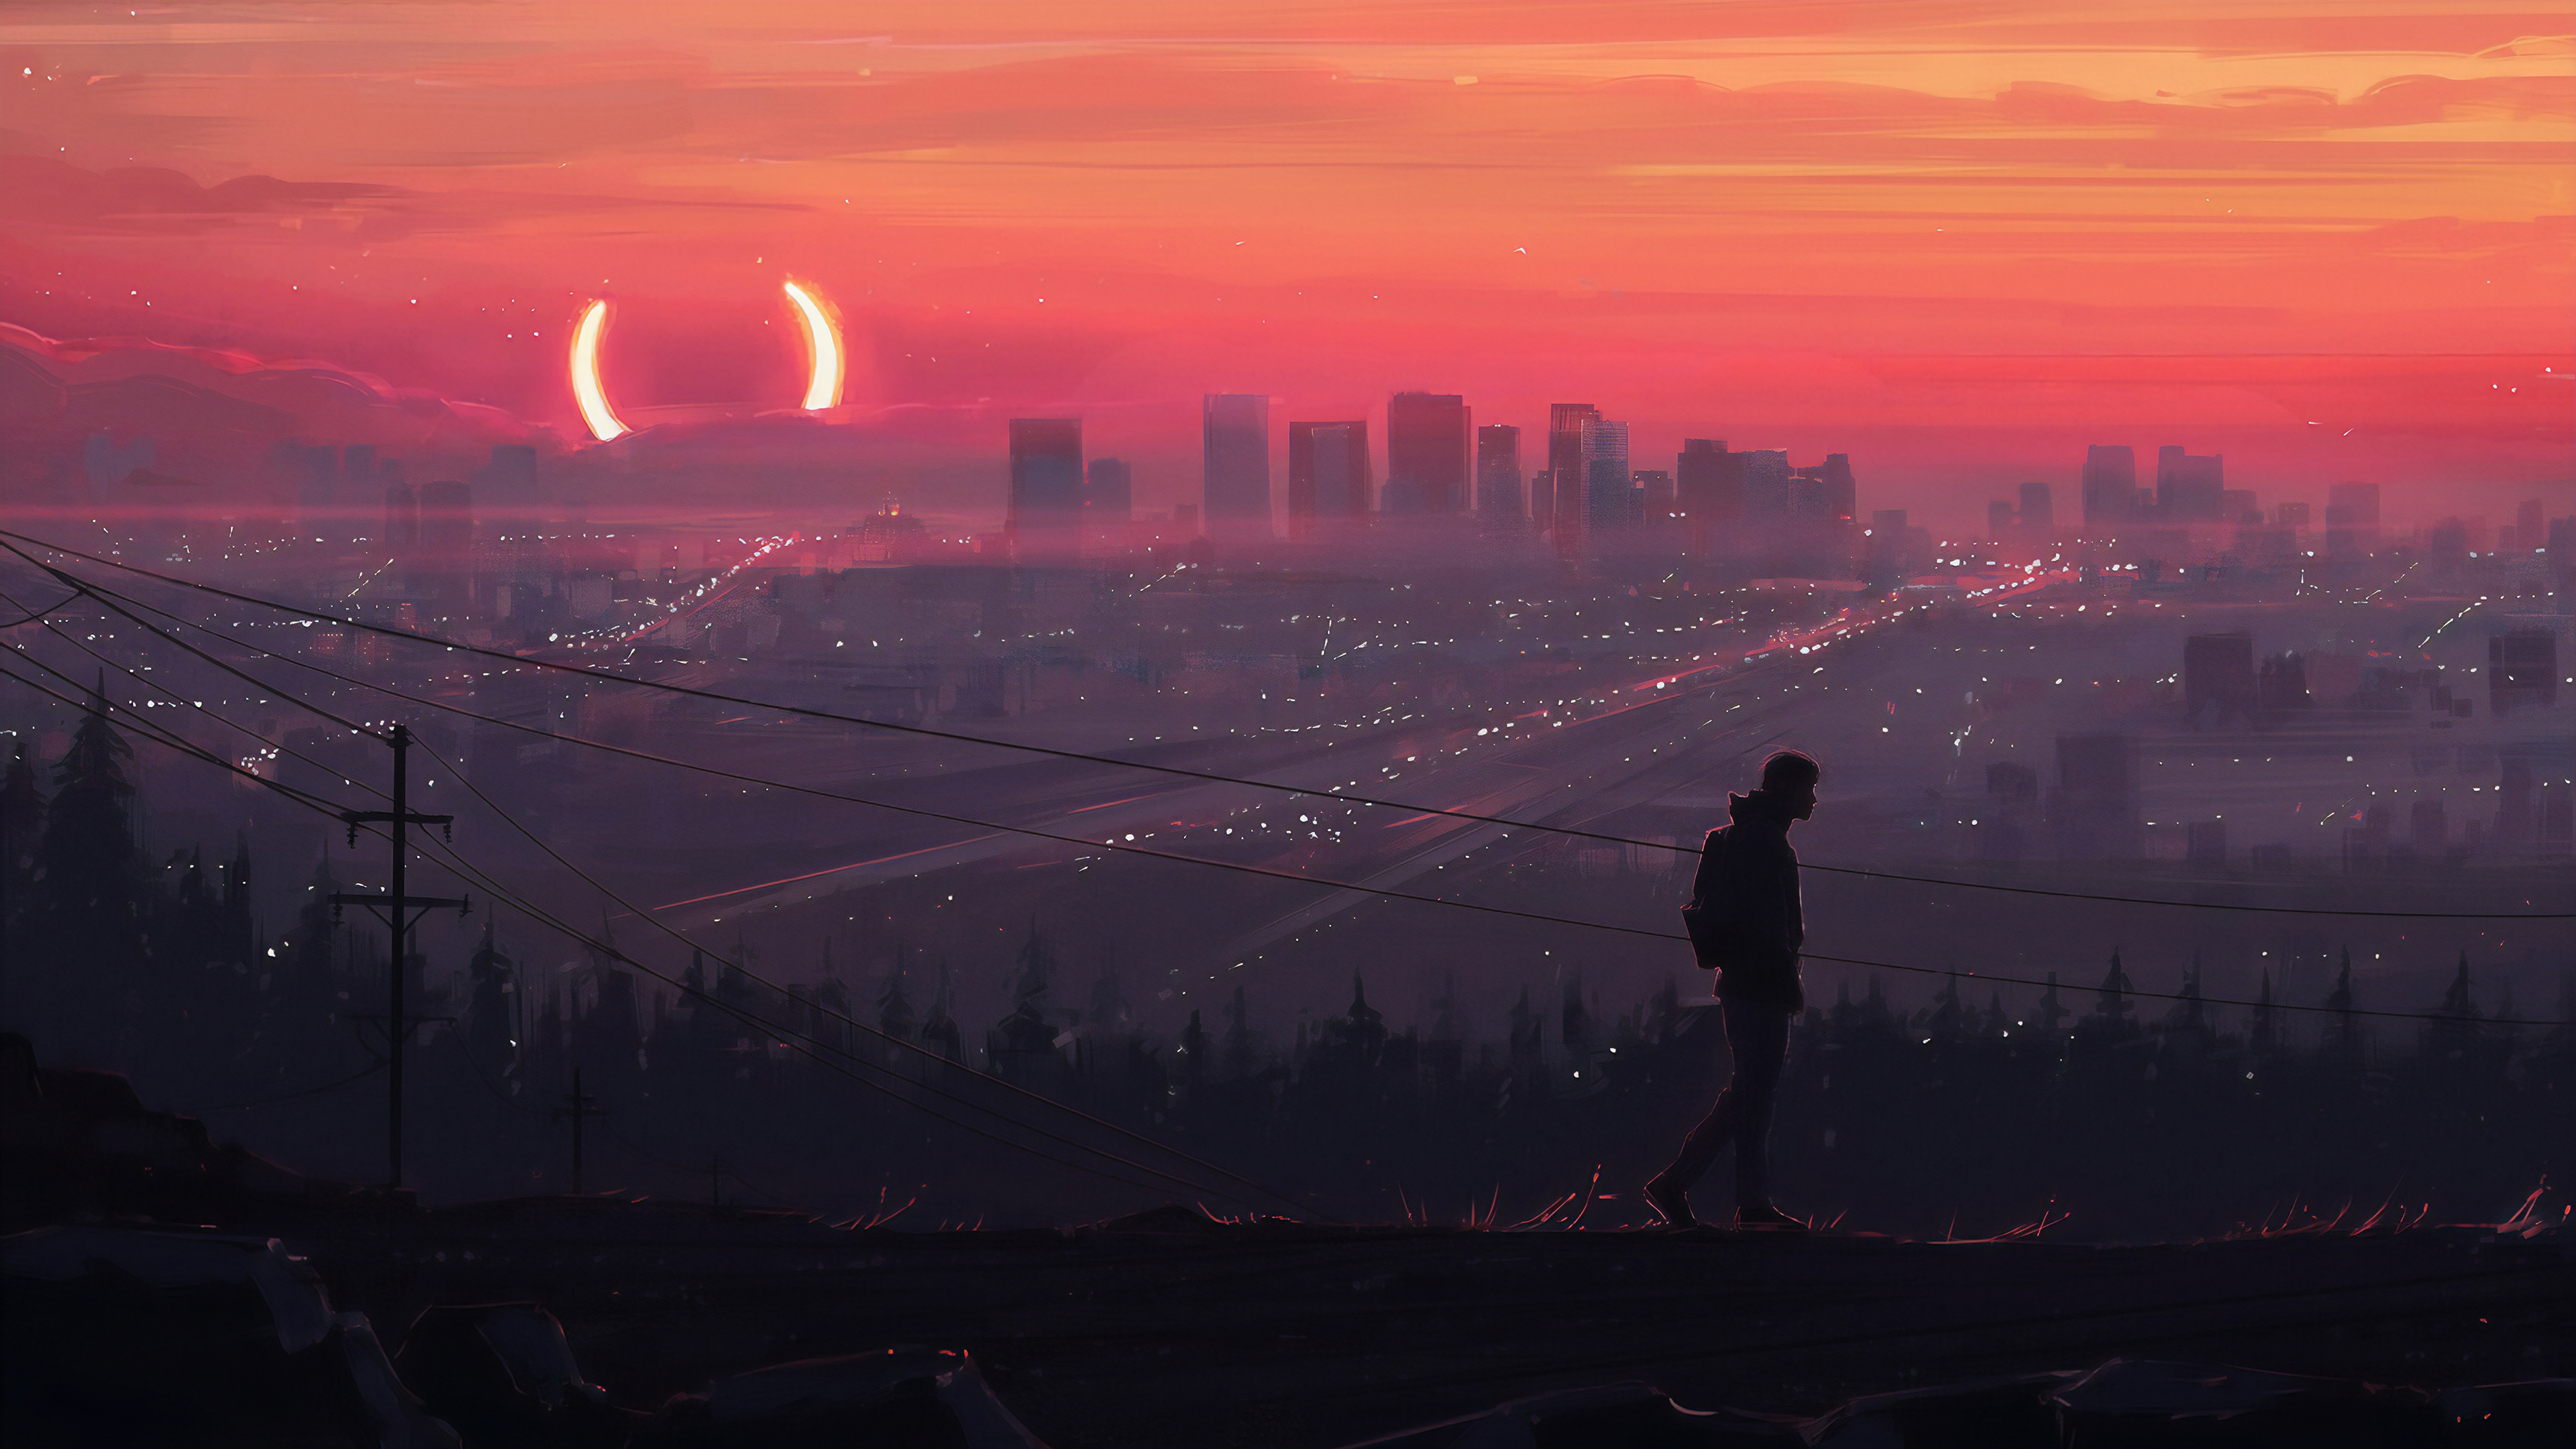 all alone 1563221930 - All Alone - sad wallpapers, hd-wallpapers, digital art wallpapers, artwork wallpapers, artstation wallpapers, artist wallpapers, alone wallpapers, 4k-wallpapers